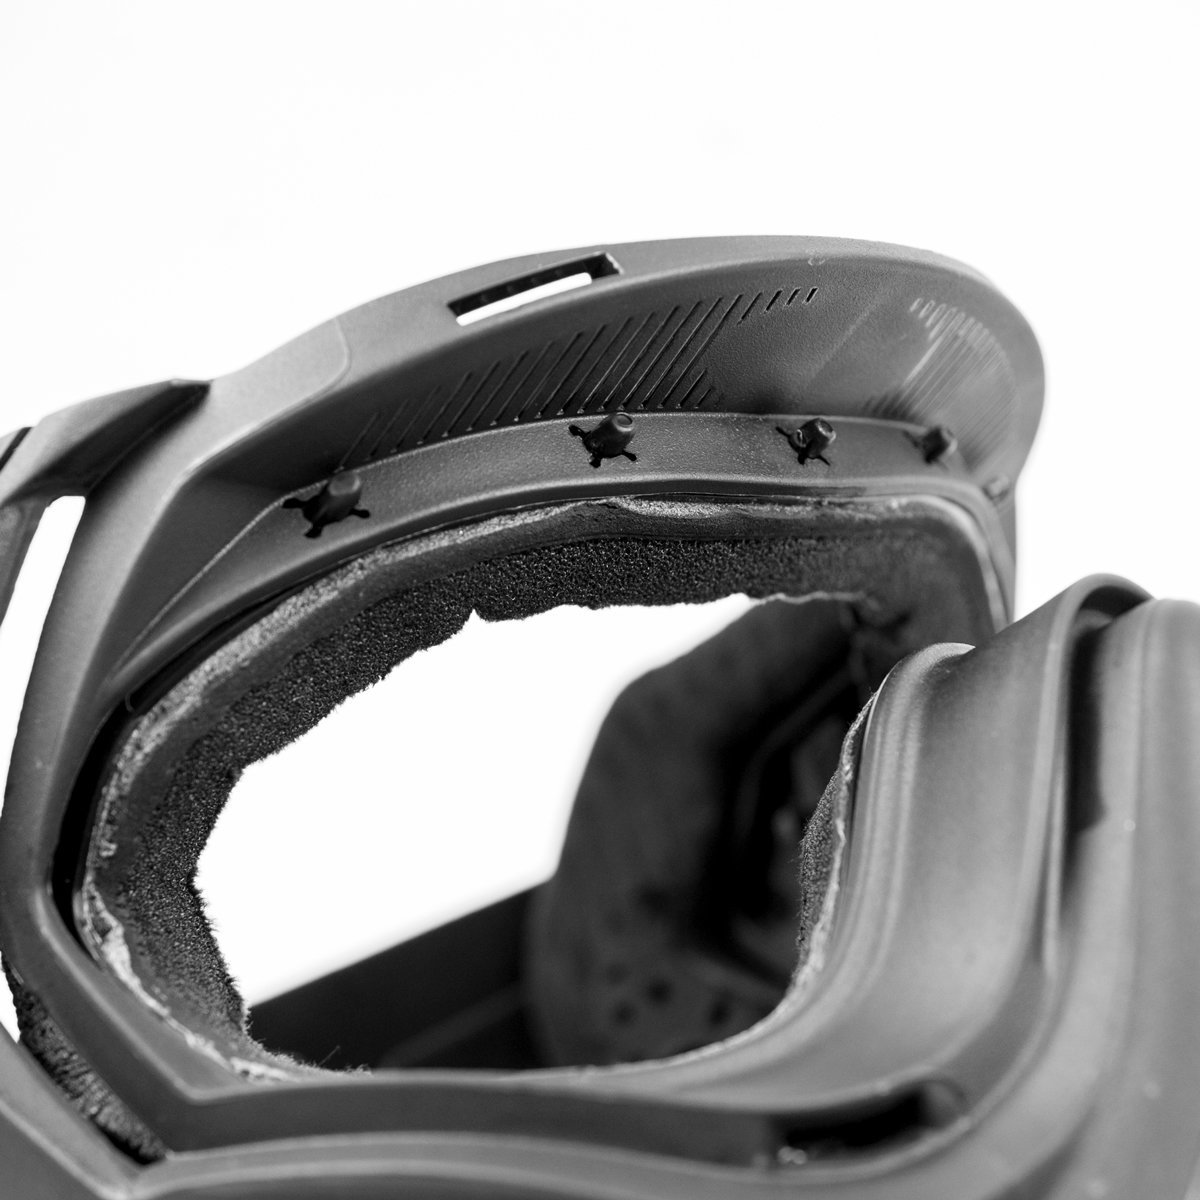 View larger image of Valken Profit Snap Click Thermal Paintball Goggles